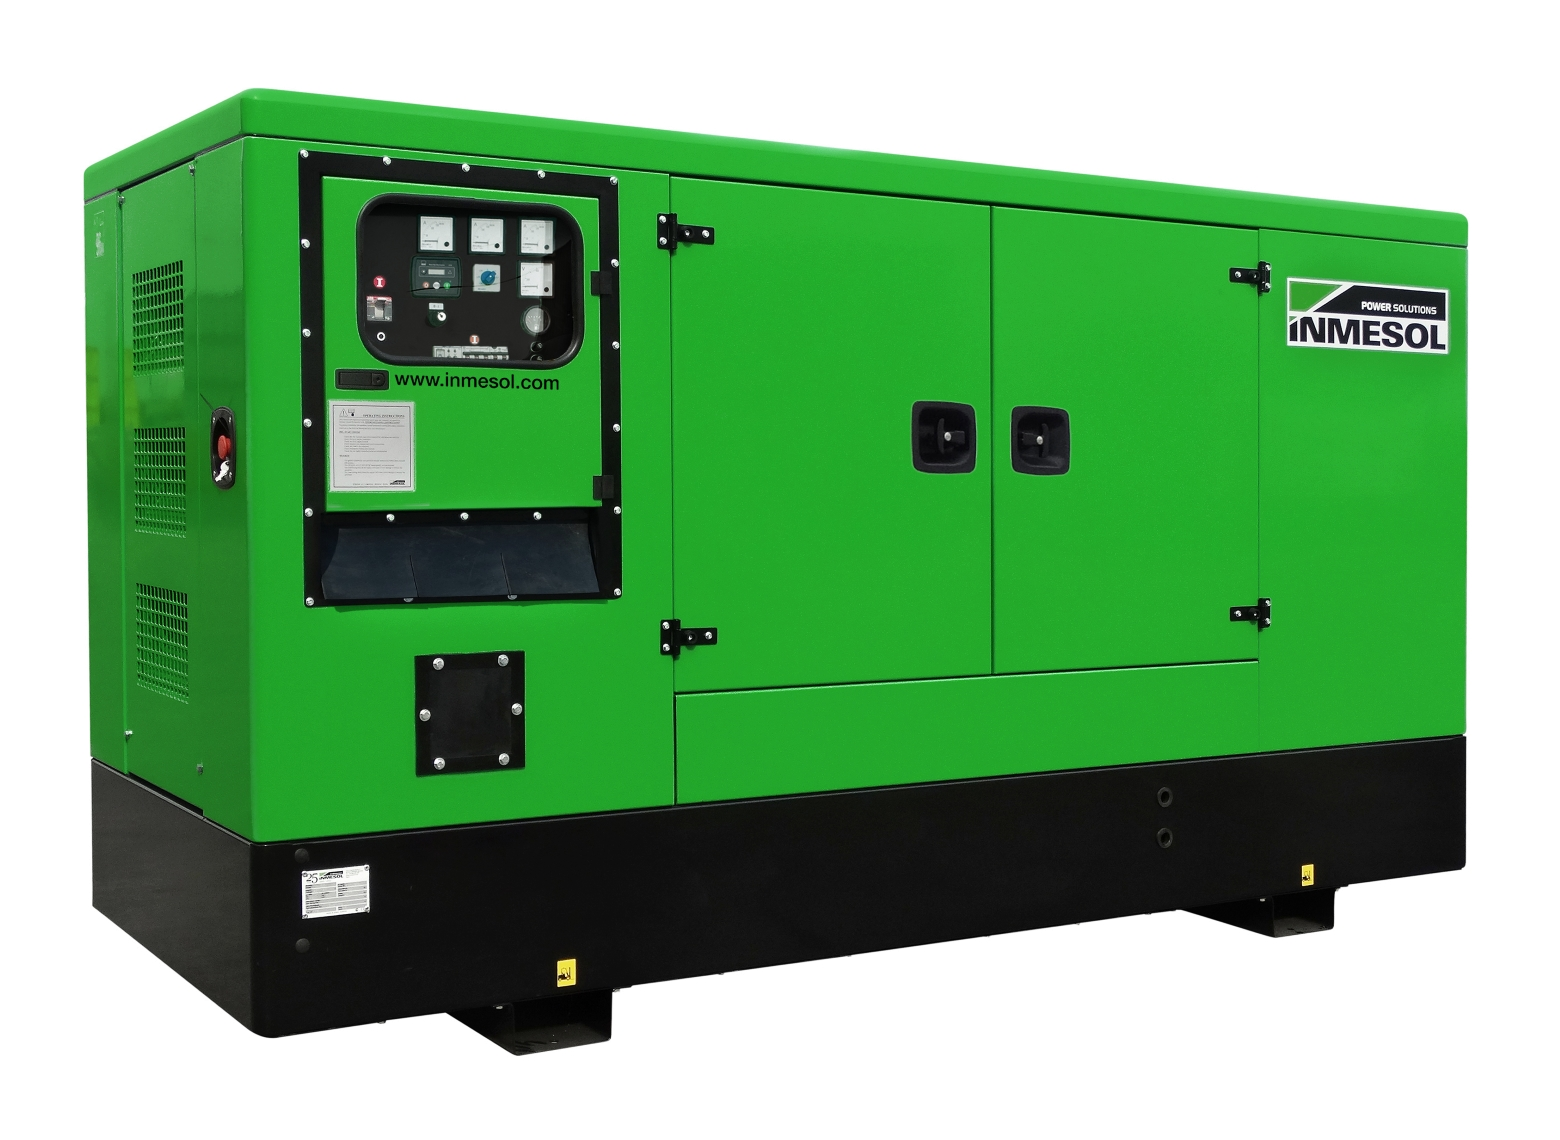 Generator with manual control panel.ID-100 - DEUTZ - BF4M1013E(60HZ) - 1.800 R.P.M. | 60 Hz